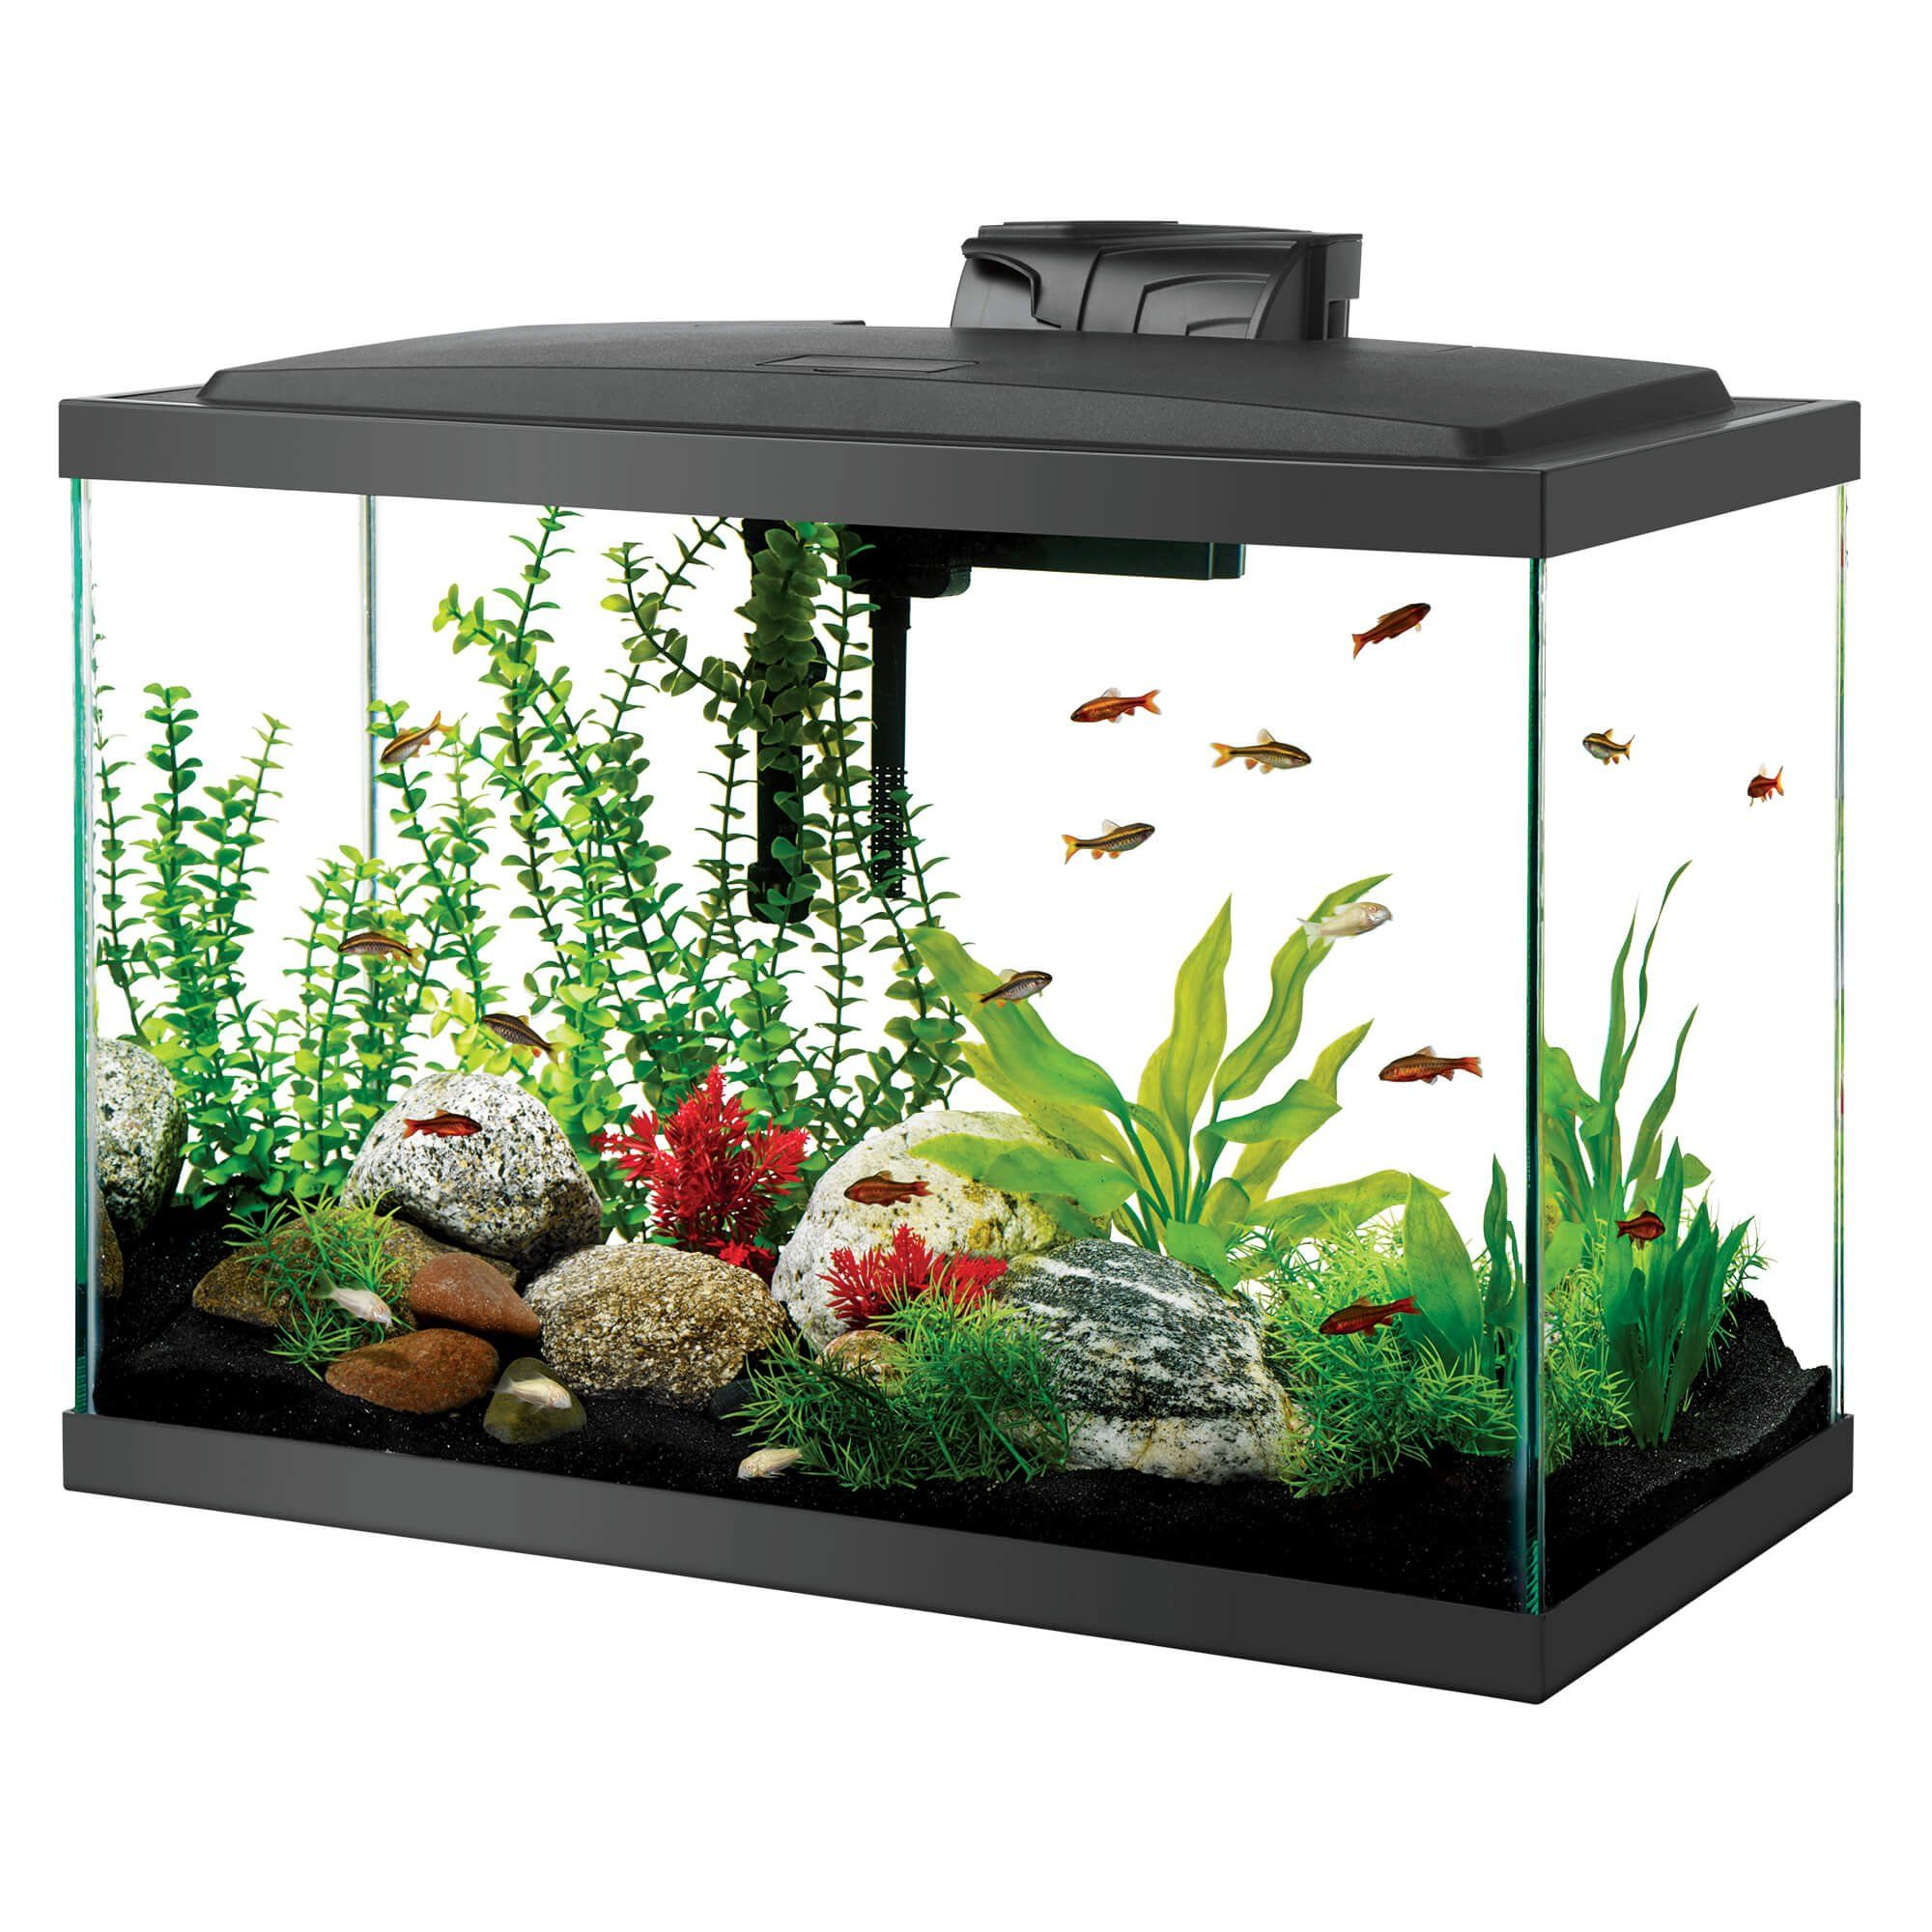 Aqueon LED Aquarium Kit 20 Gallon Tall Black in 2019